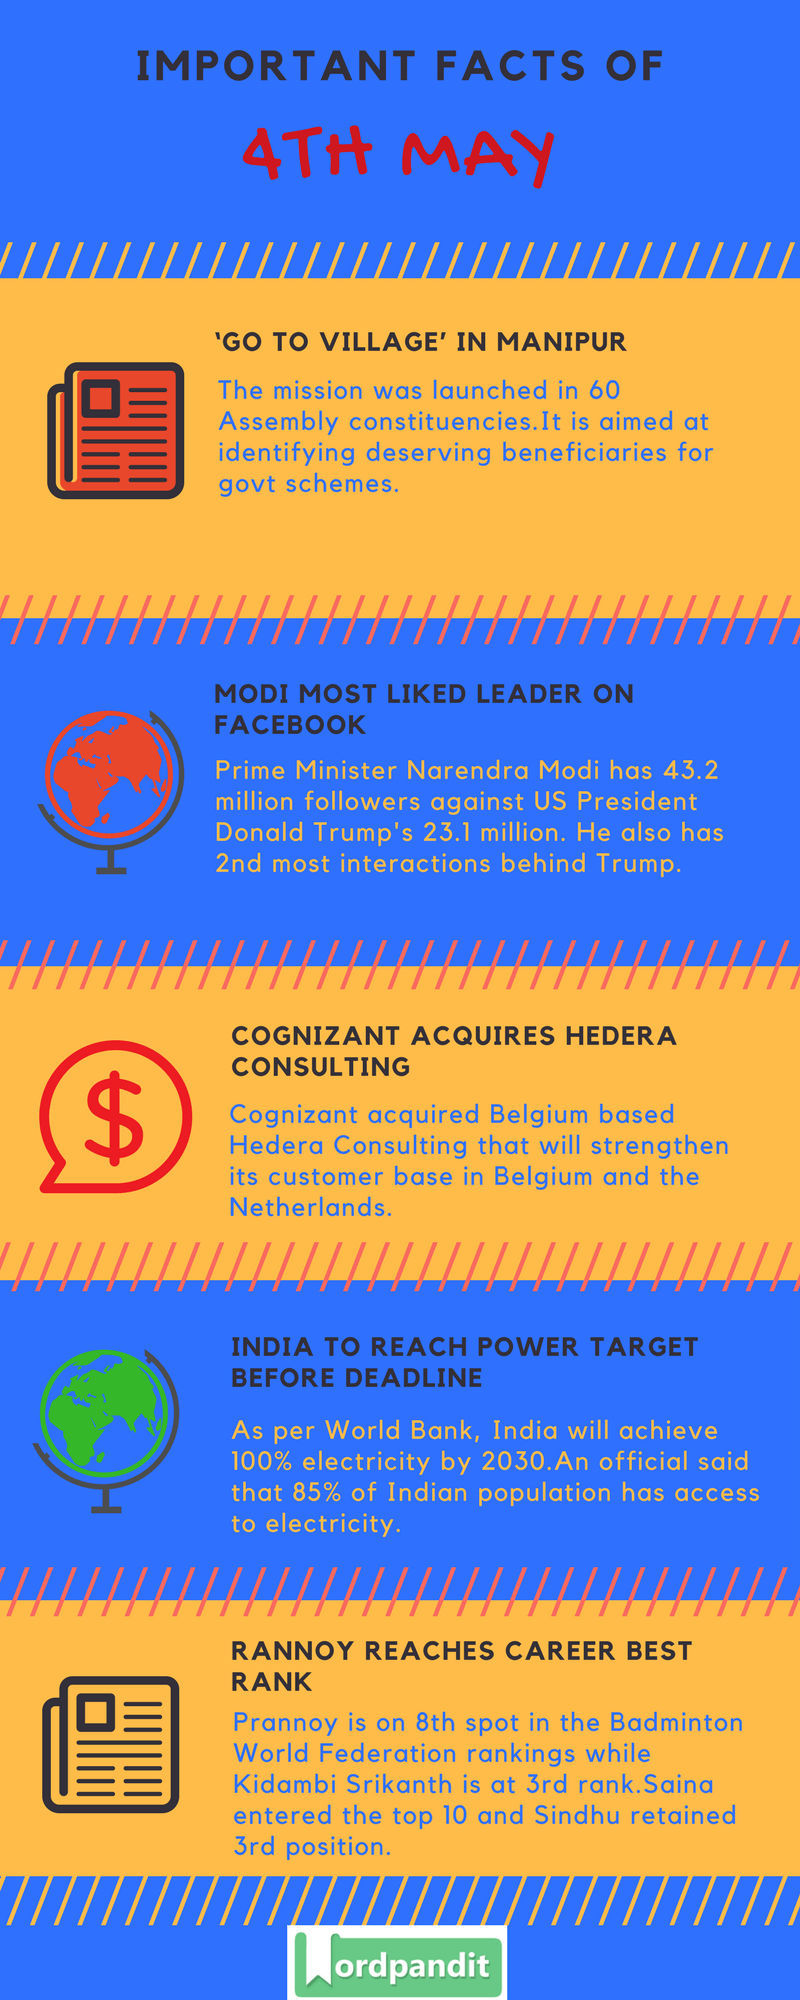 Daily Current Affairs 4 May 2018 Current Affairs Quiz May 4 2018 Current Affairs Infographic